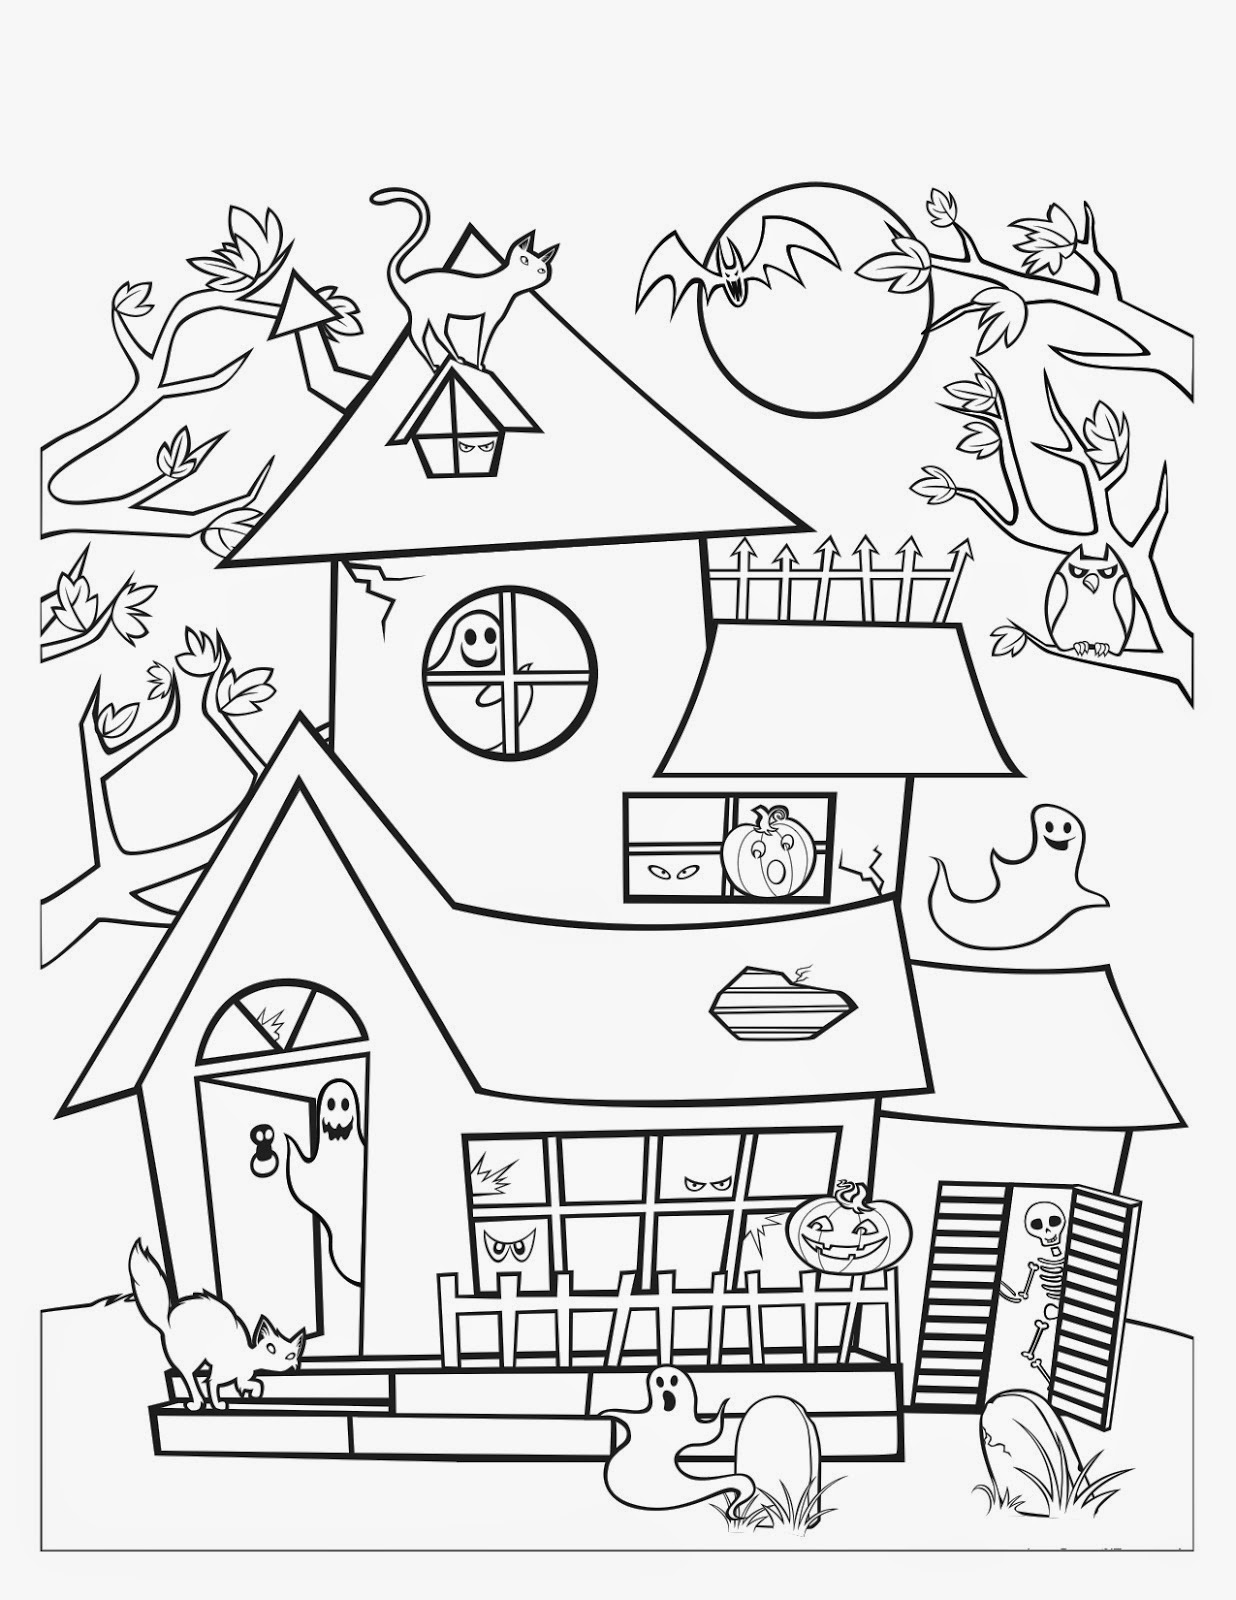 Easy Haunted House Drawing At Getdrawings